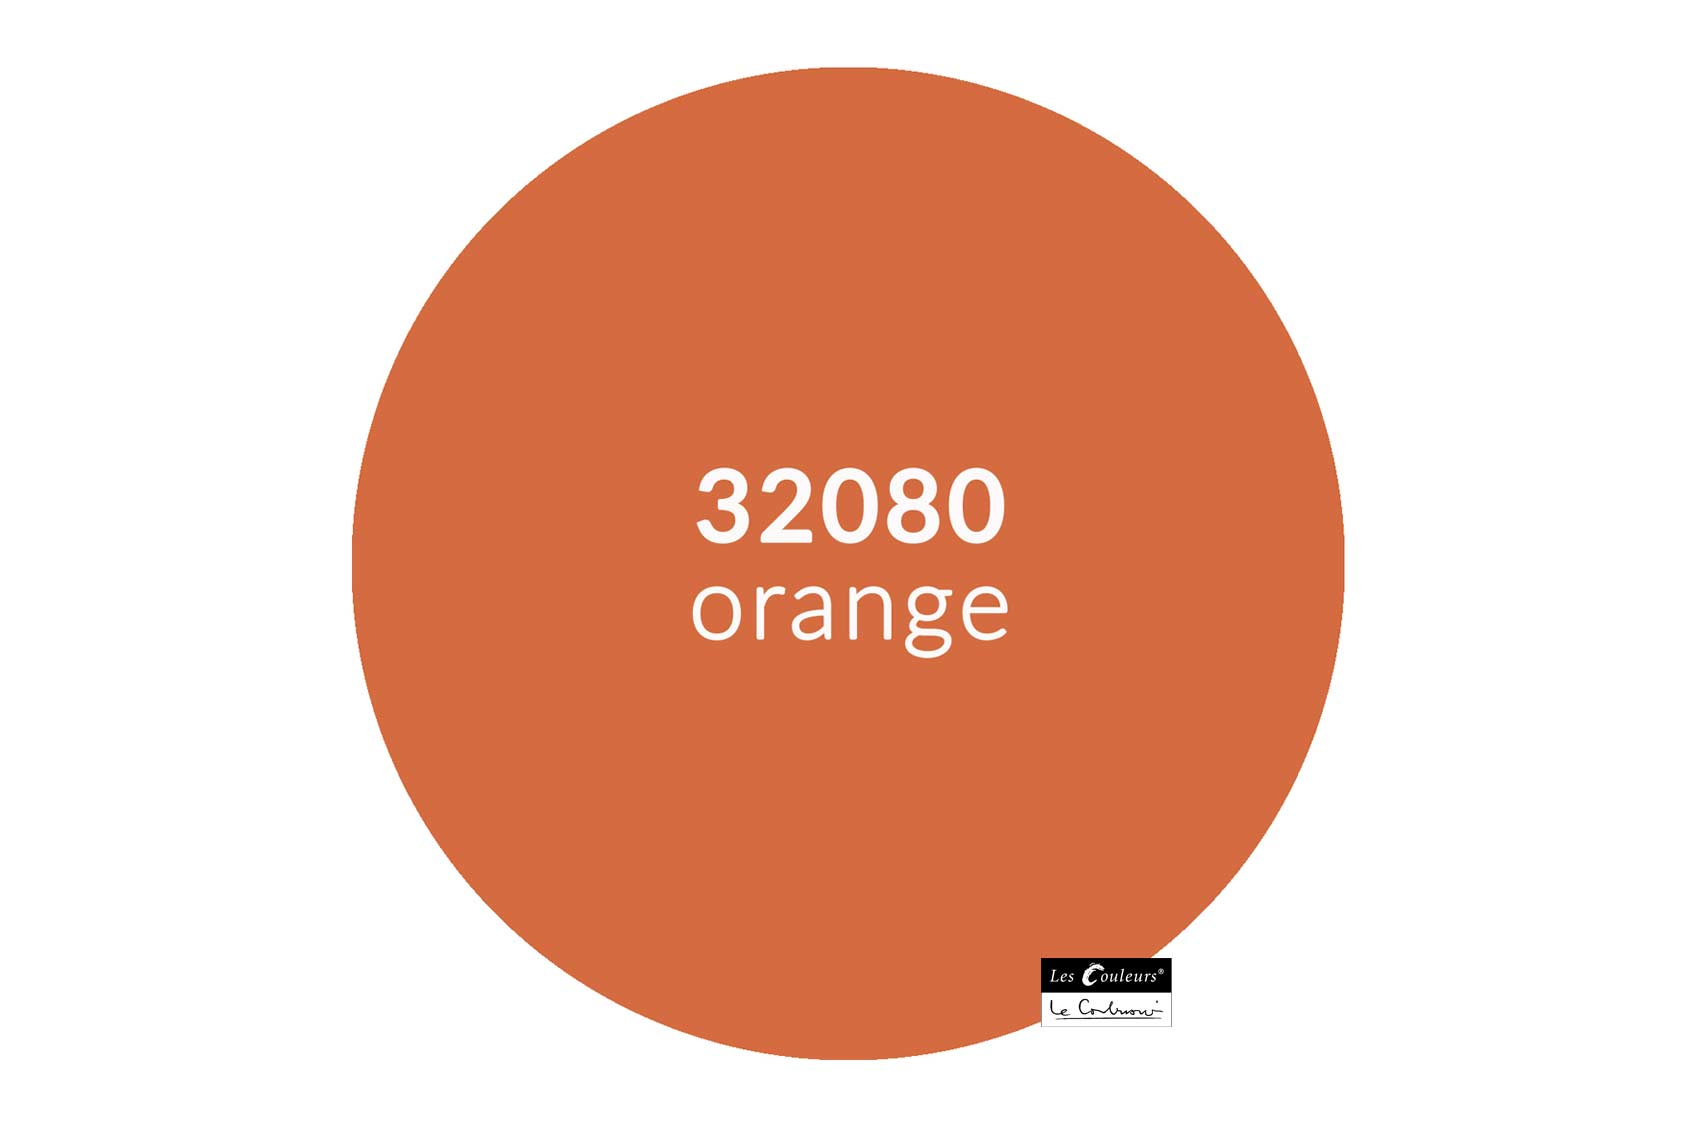 ©Les Couleurs Le Corbusier - 32080 orange